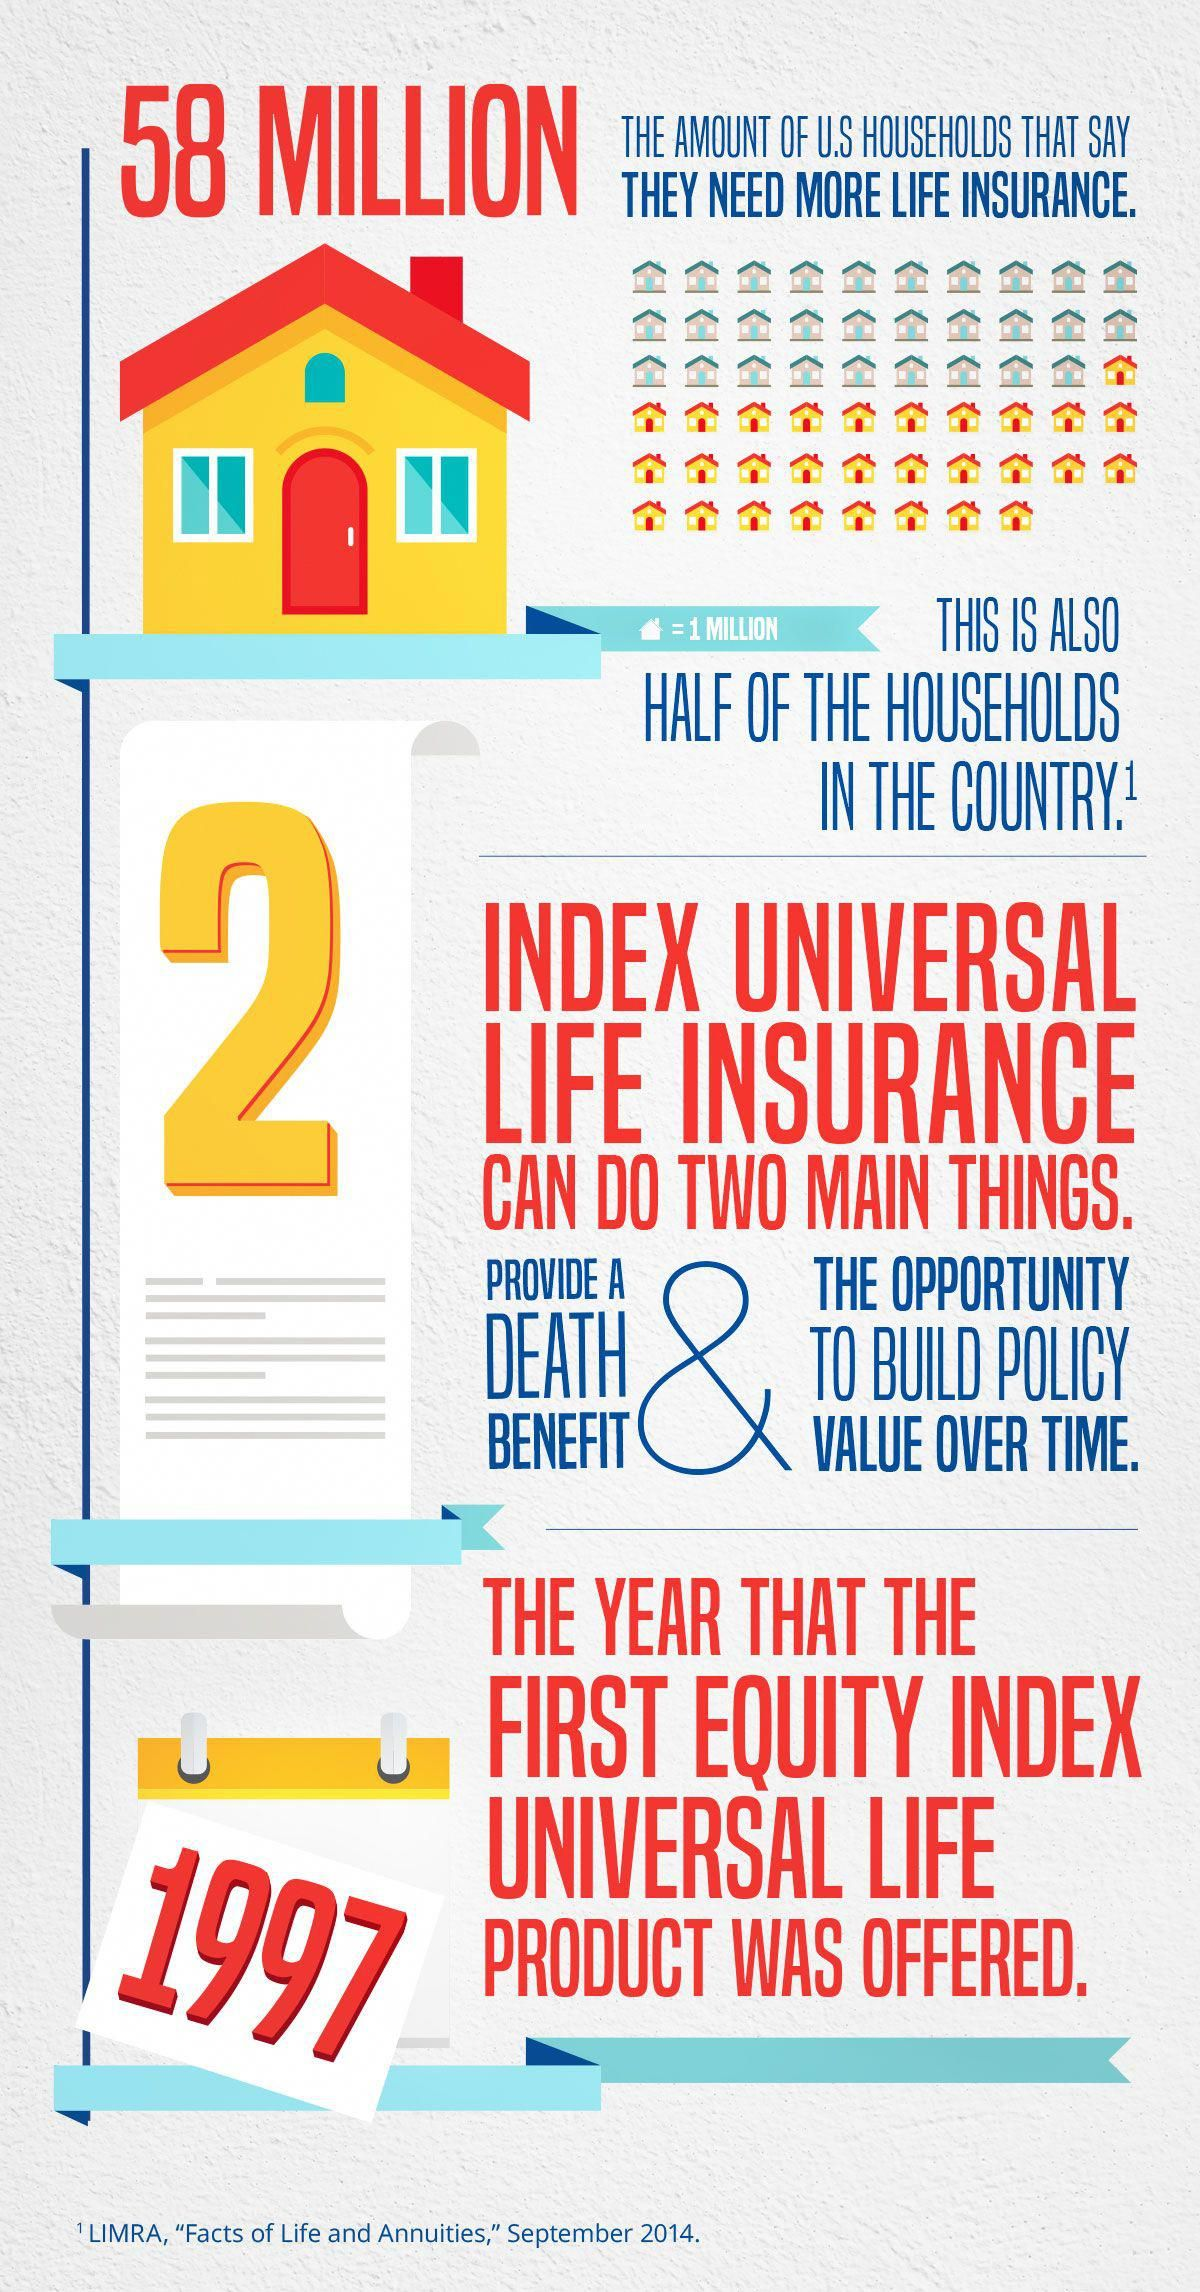 Over the last few decades, index universal life insurance ...